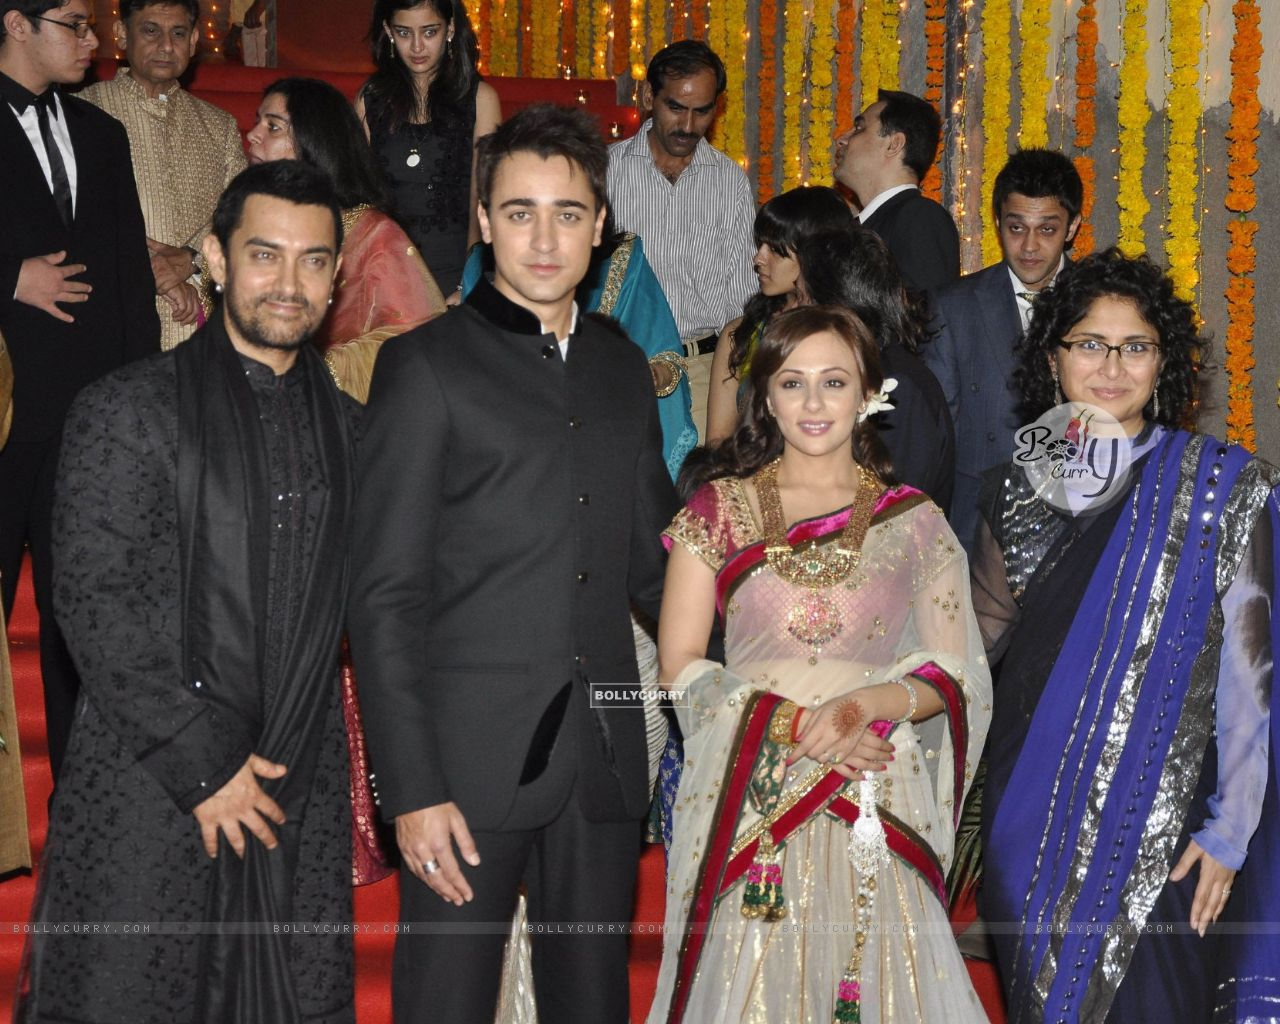 Aamir Khan with Kiran Rao at nephew Imran Khan's wedding ceremony with